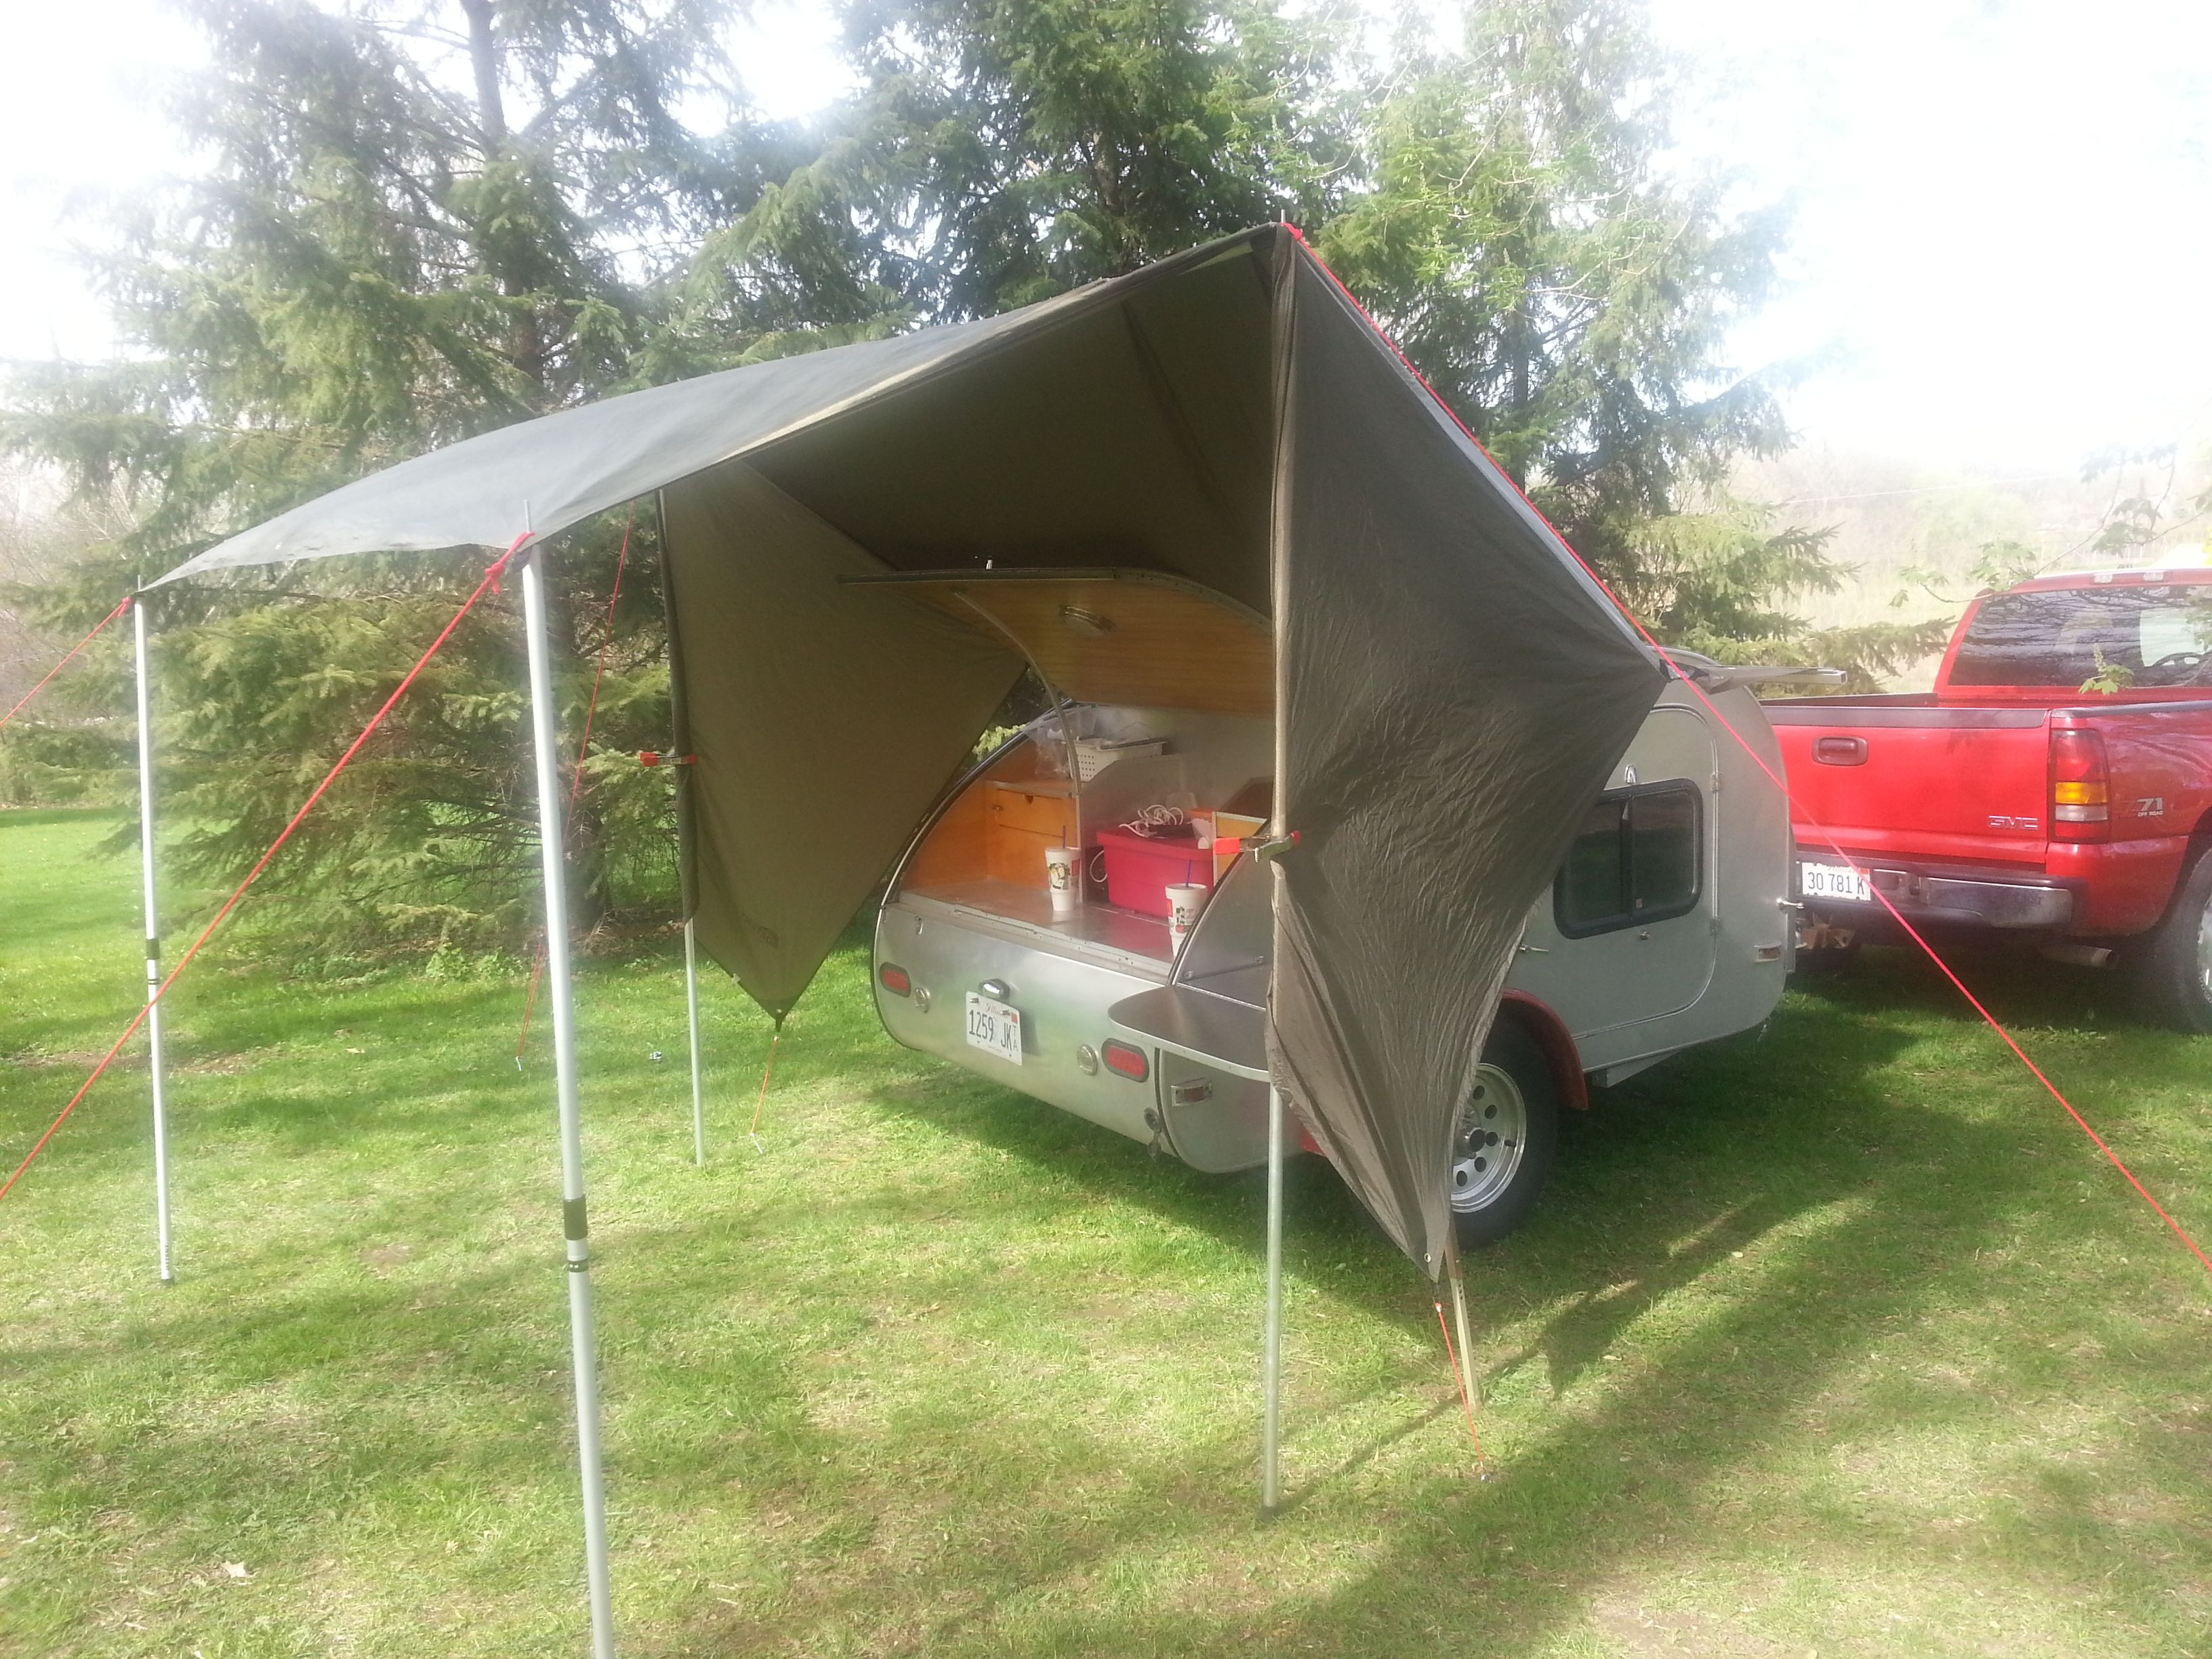 The OzTent Rain Fly Accessory Makes A Perfect Addition To Teardrop Trailer For Galley And